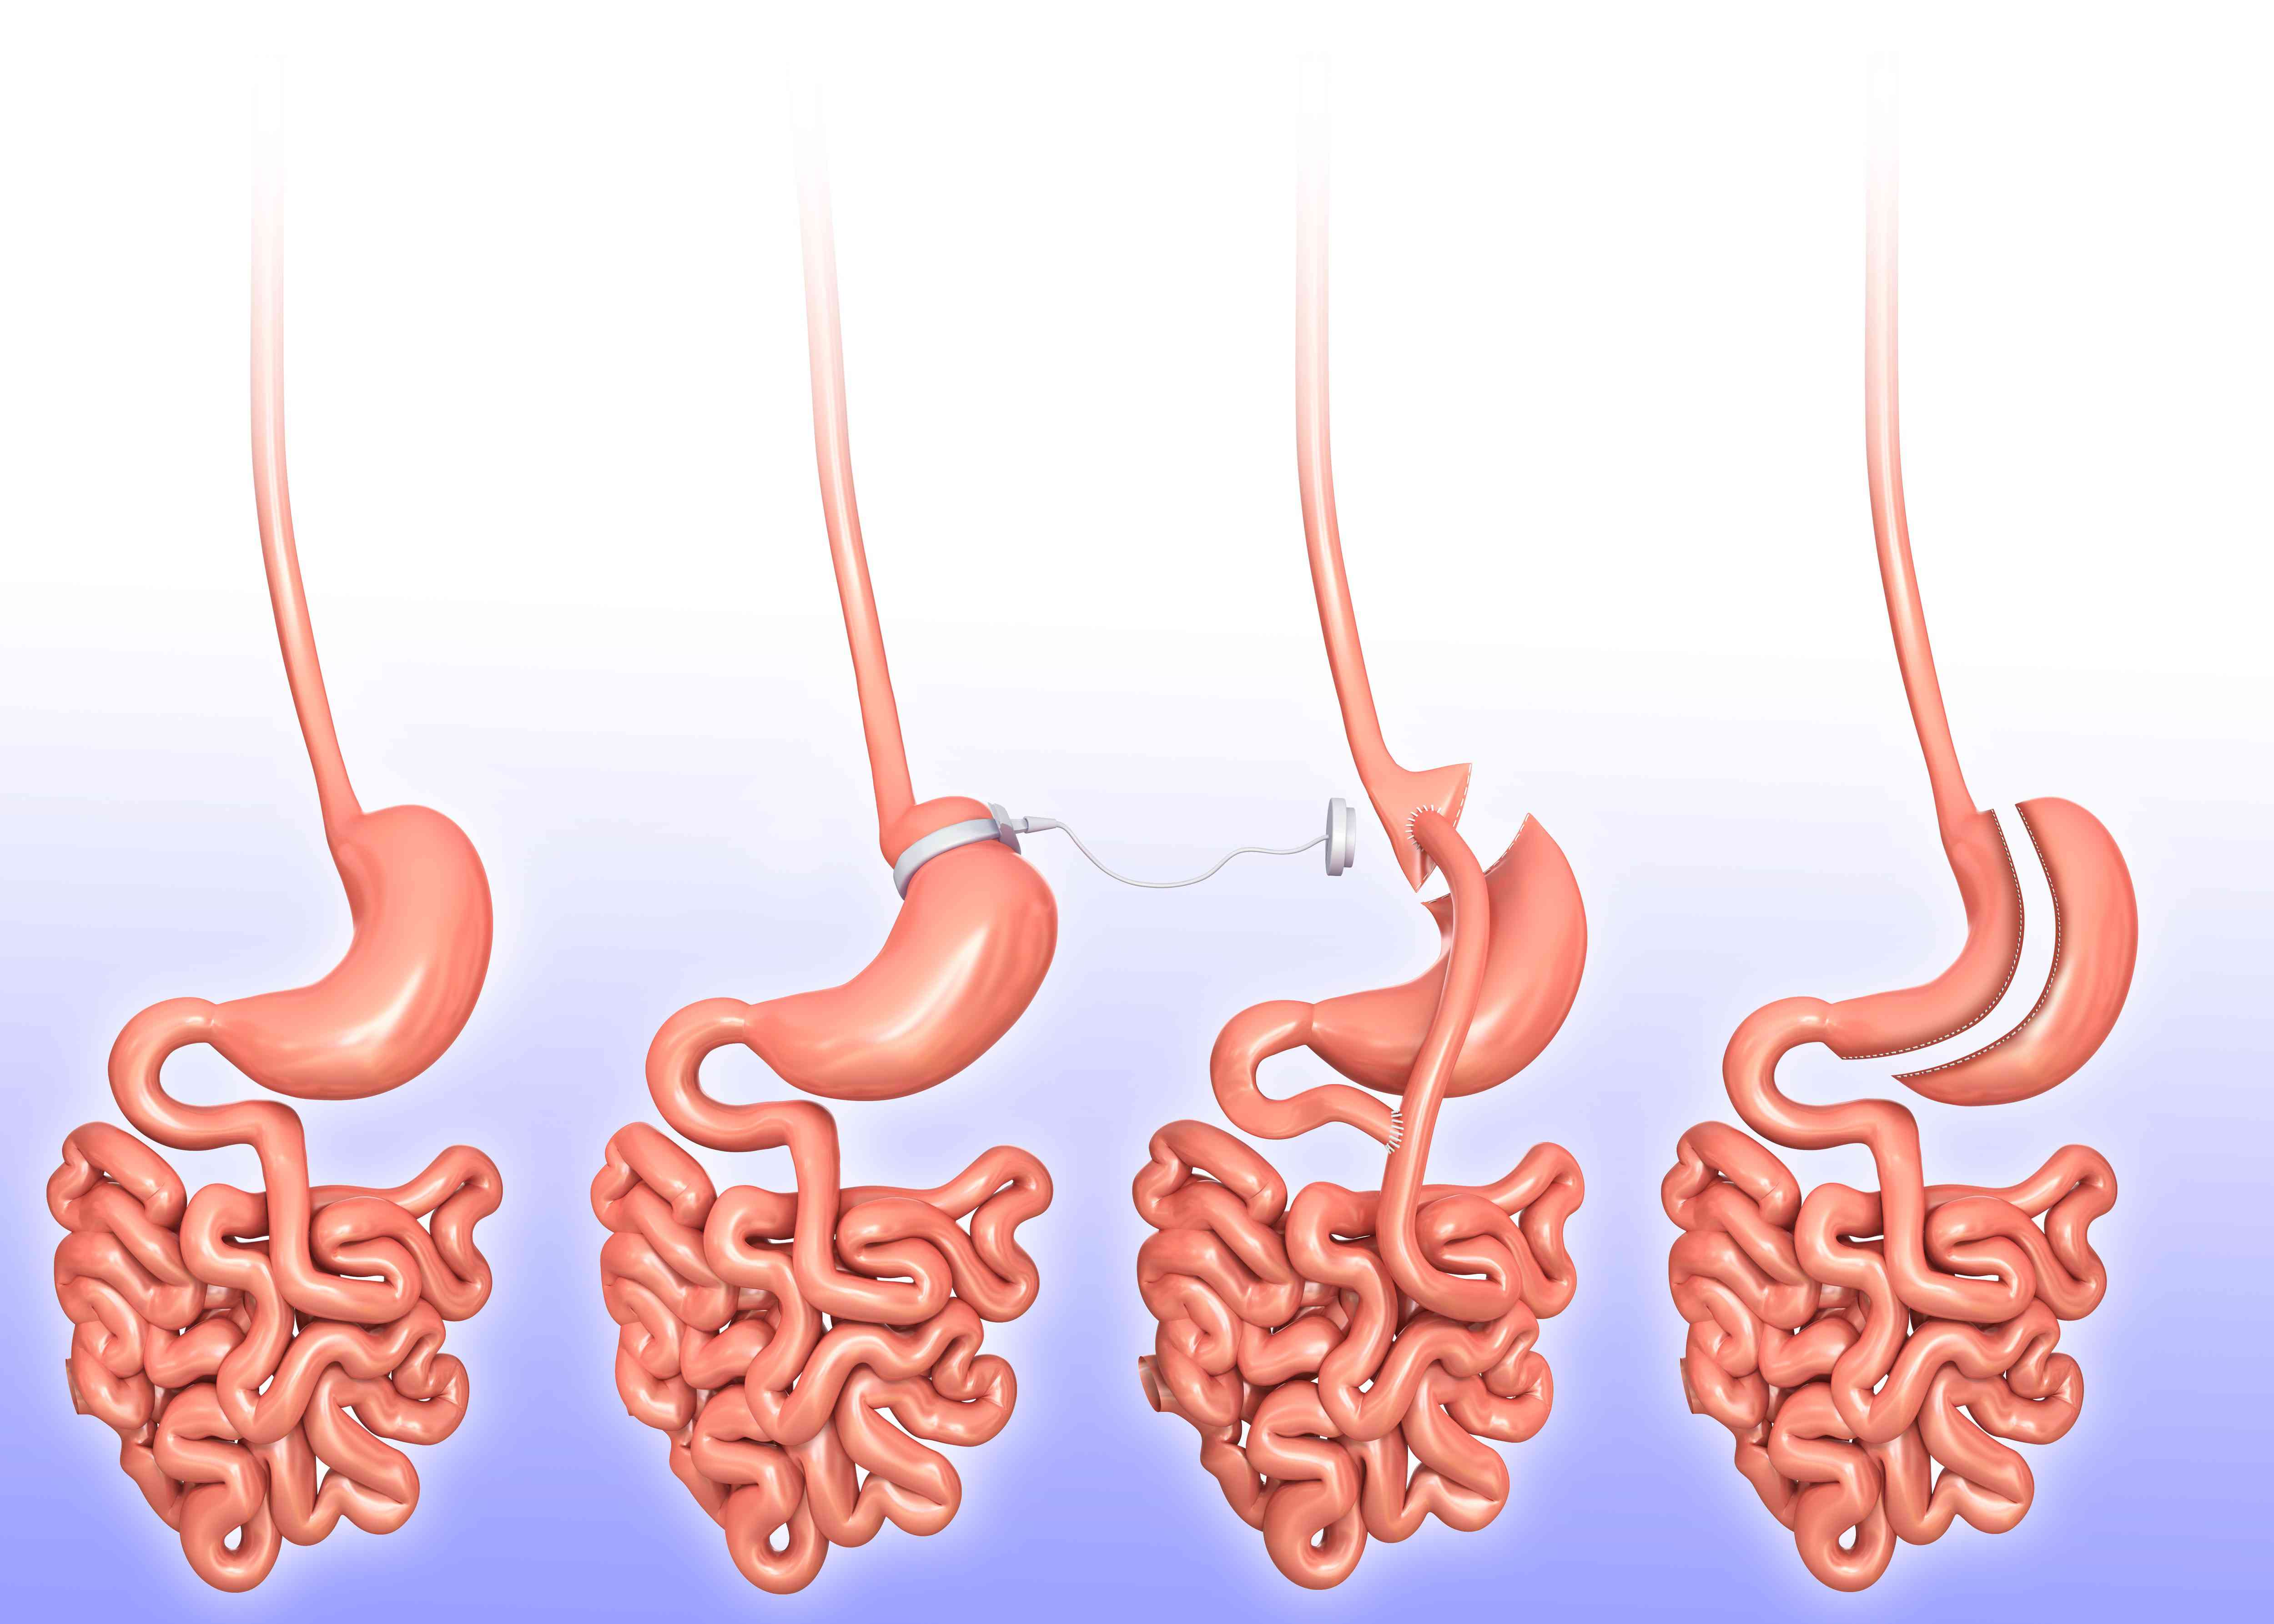 Steps involved in gastric sleeve surgery